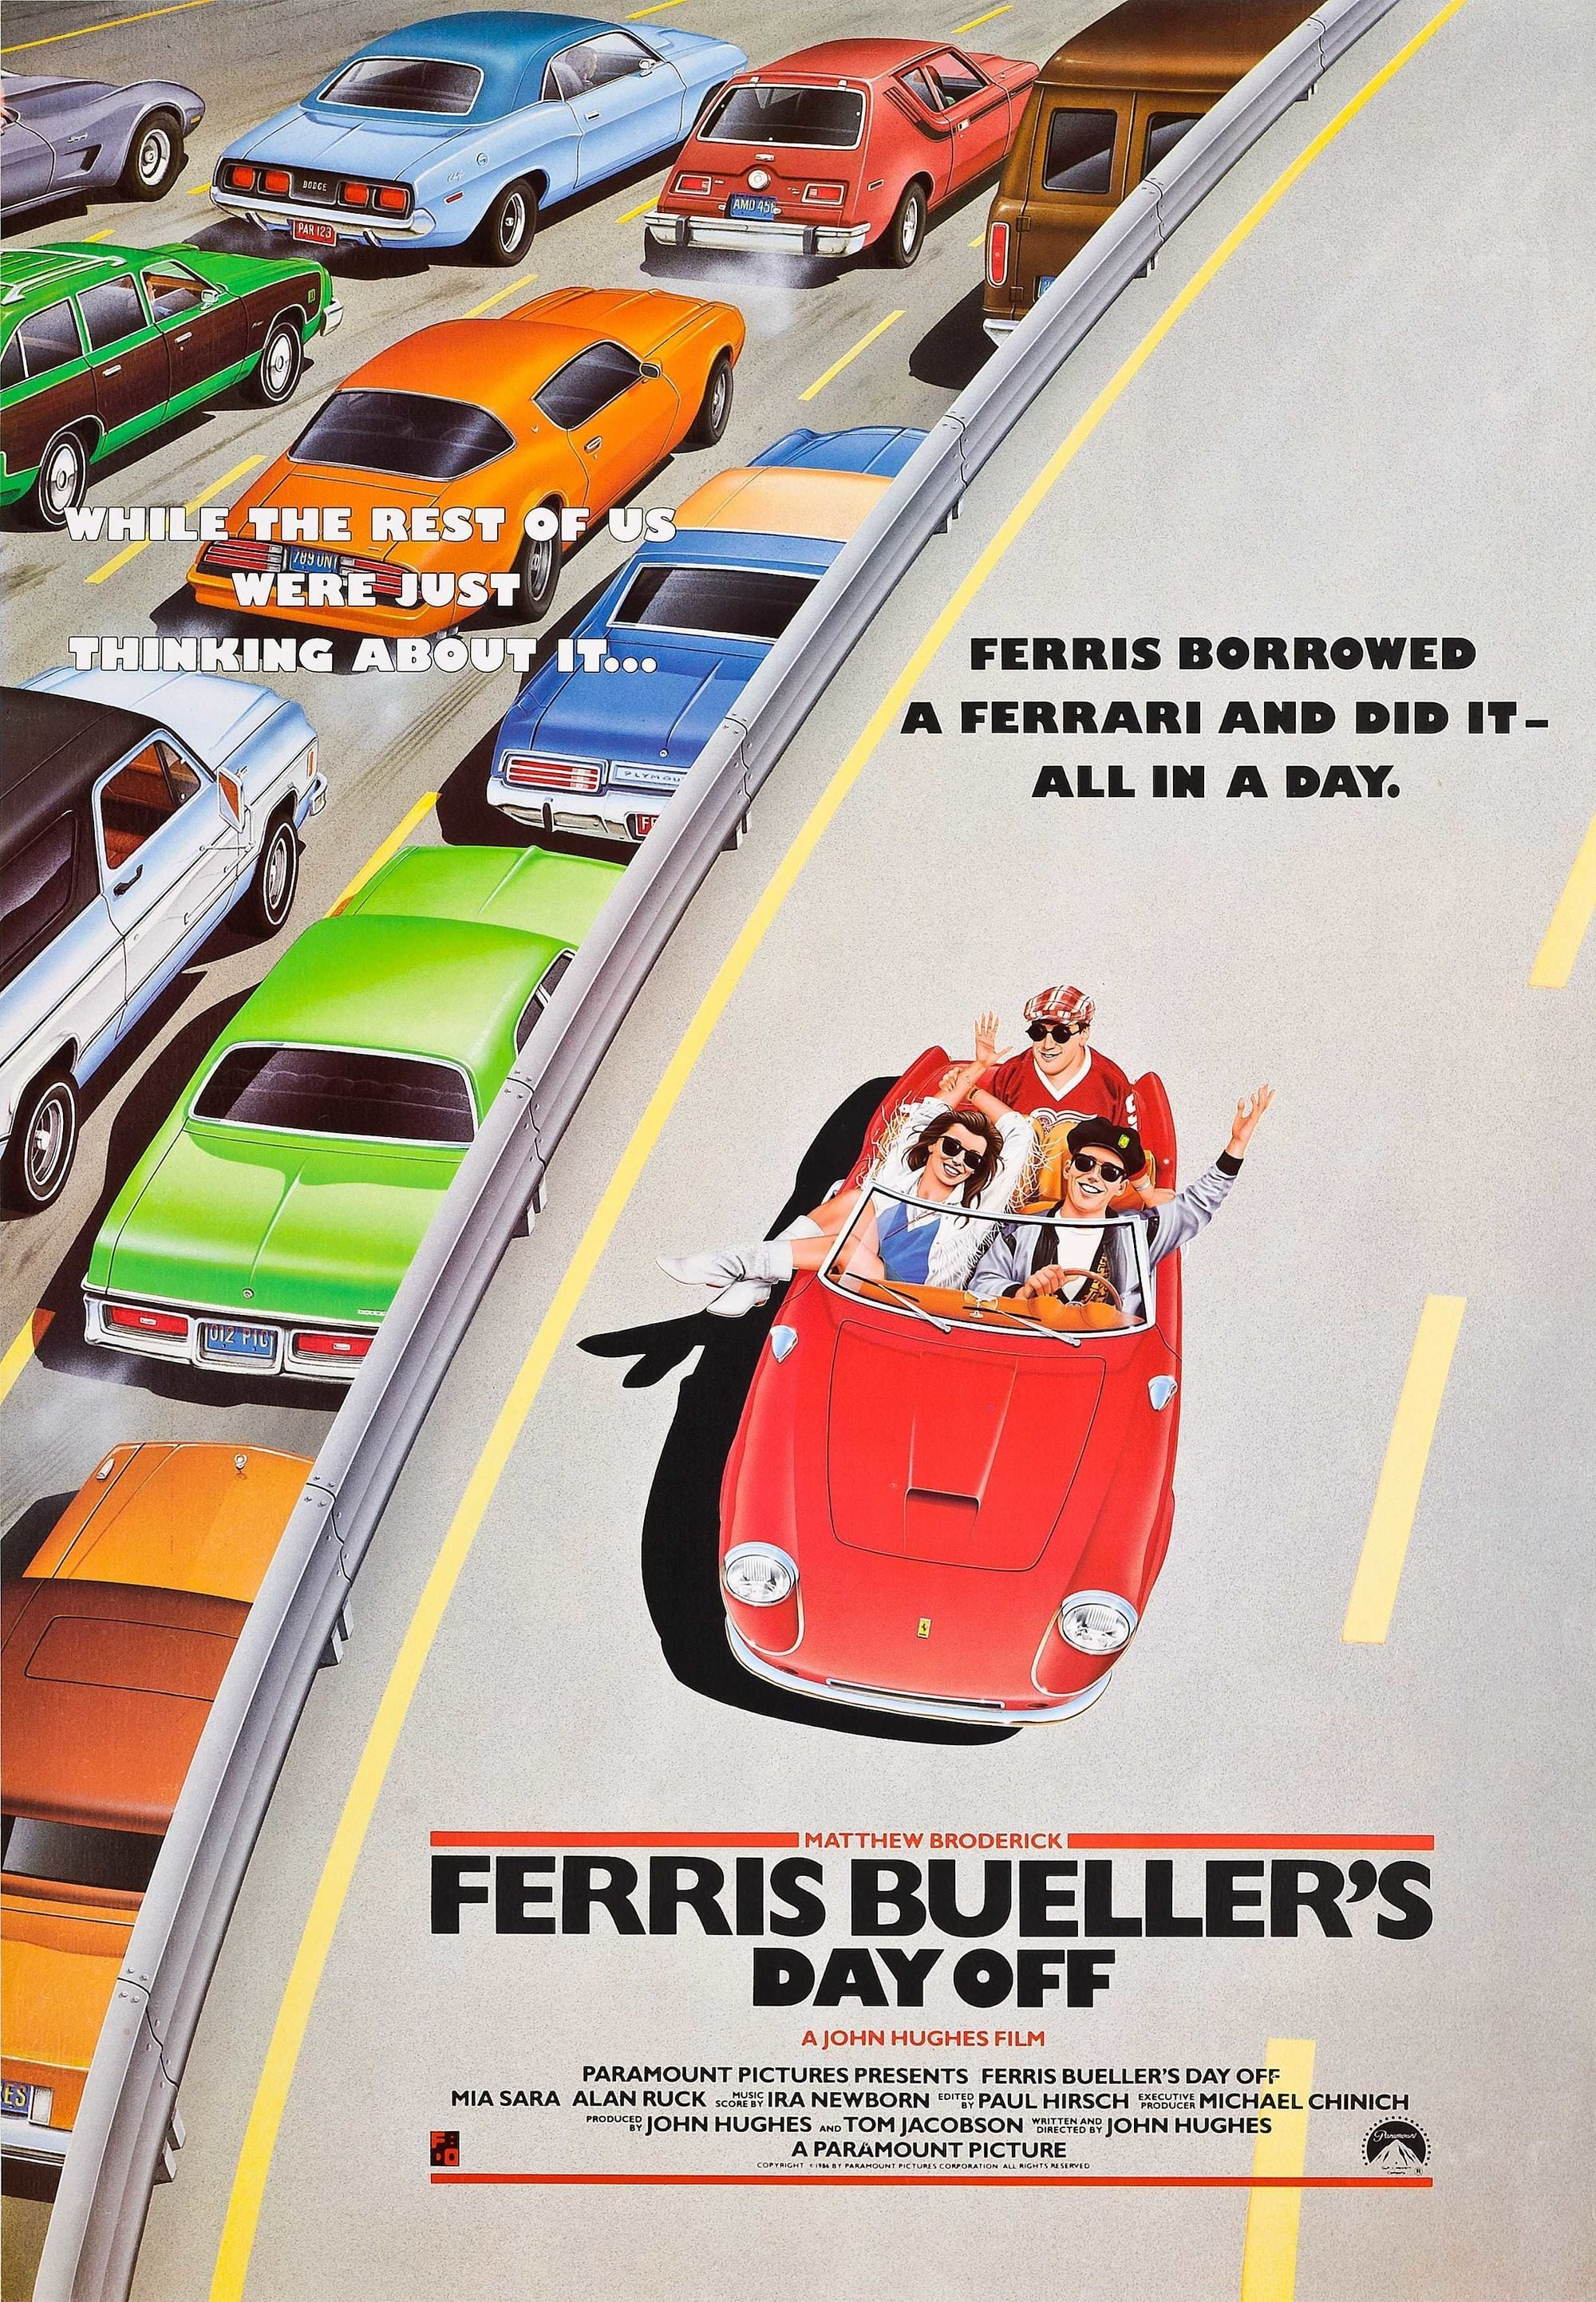 Ferris Bueller's Day Off (1986) - The Movie